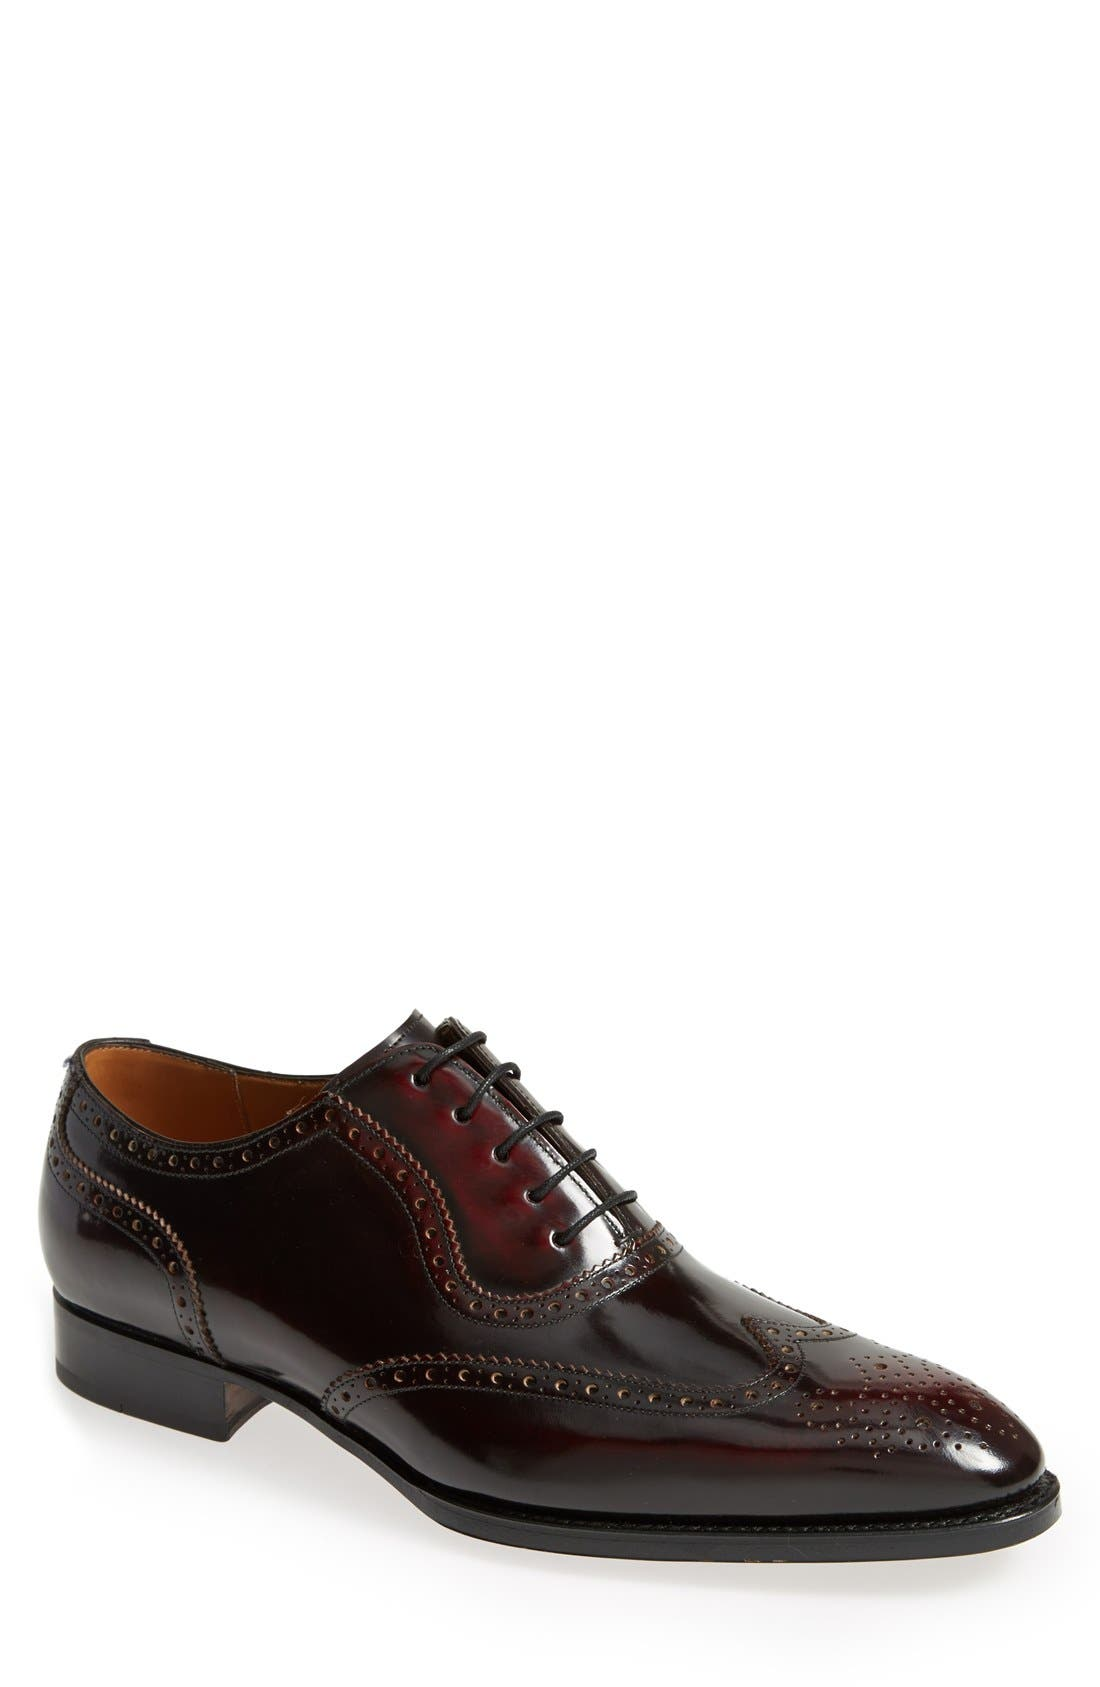 'Wexford' Wingtip,                             Main thumbnail 1, color,                             BORDEAUX